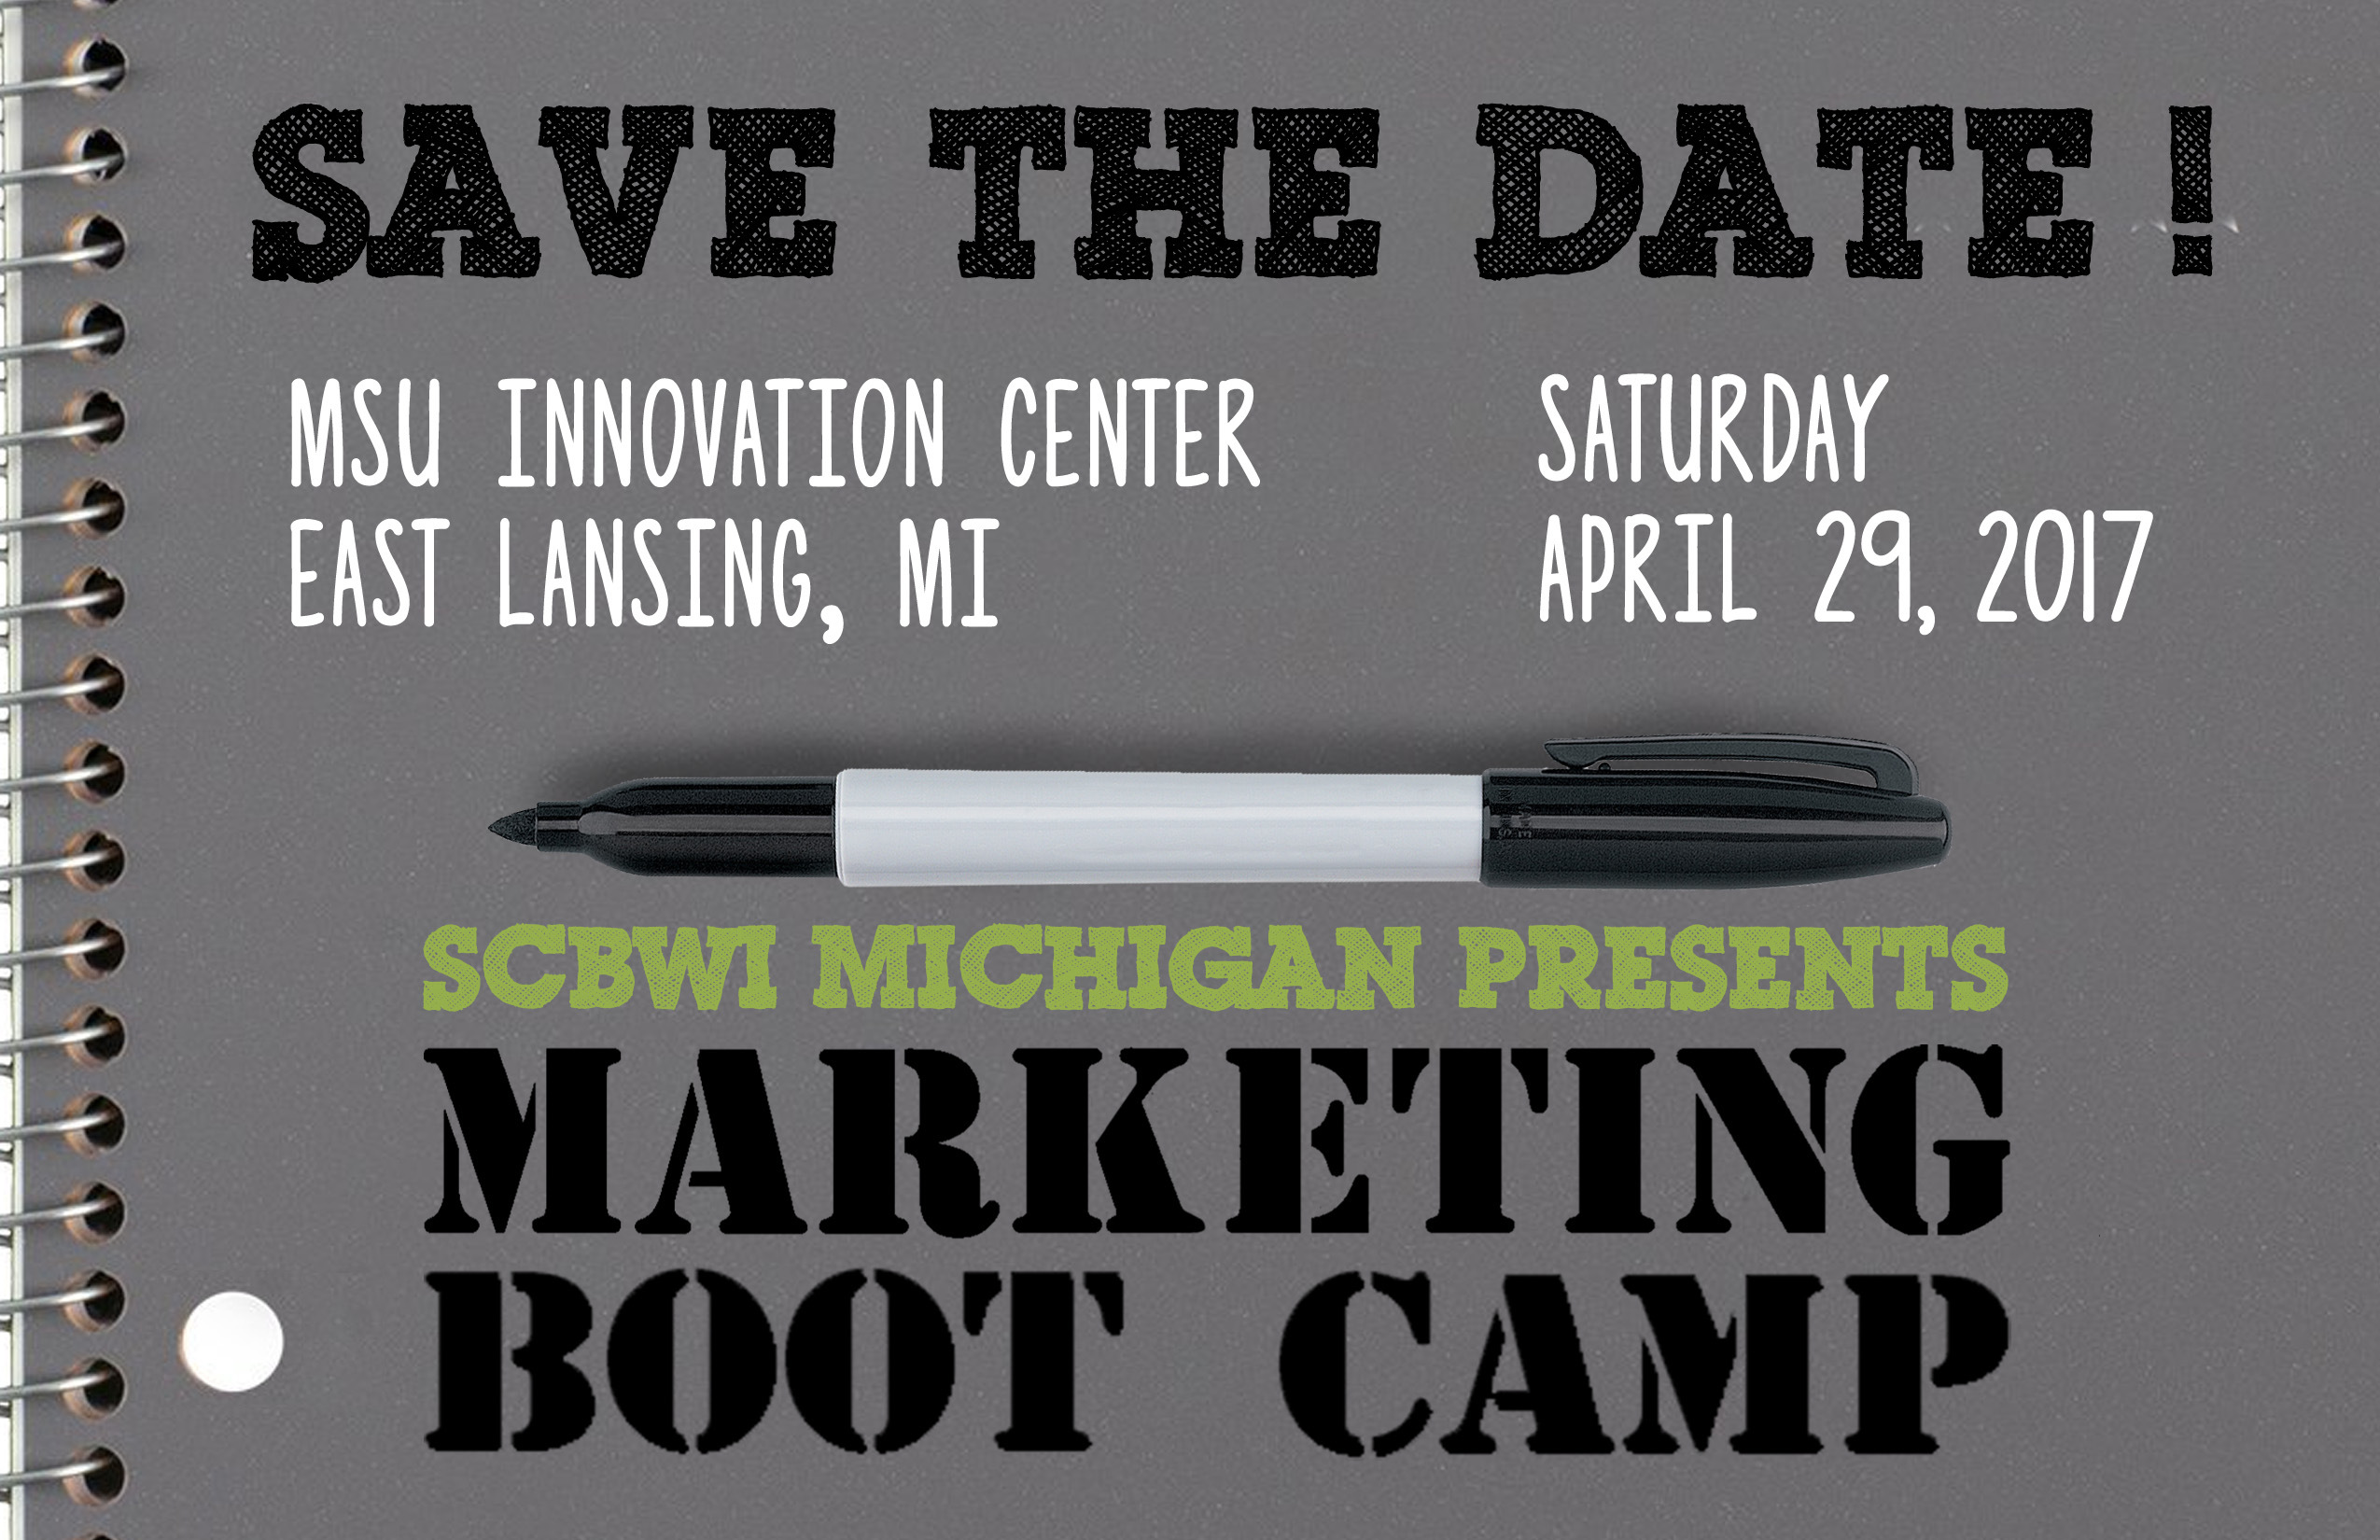 Save the Date! SCBWI Michigan Presents *Marketing Bootcamp* Saturday April 29, 2017 at the MSU Innovation Center in East Lansing. More information to come - SOON!